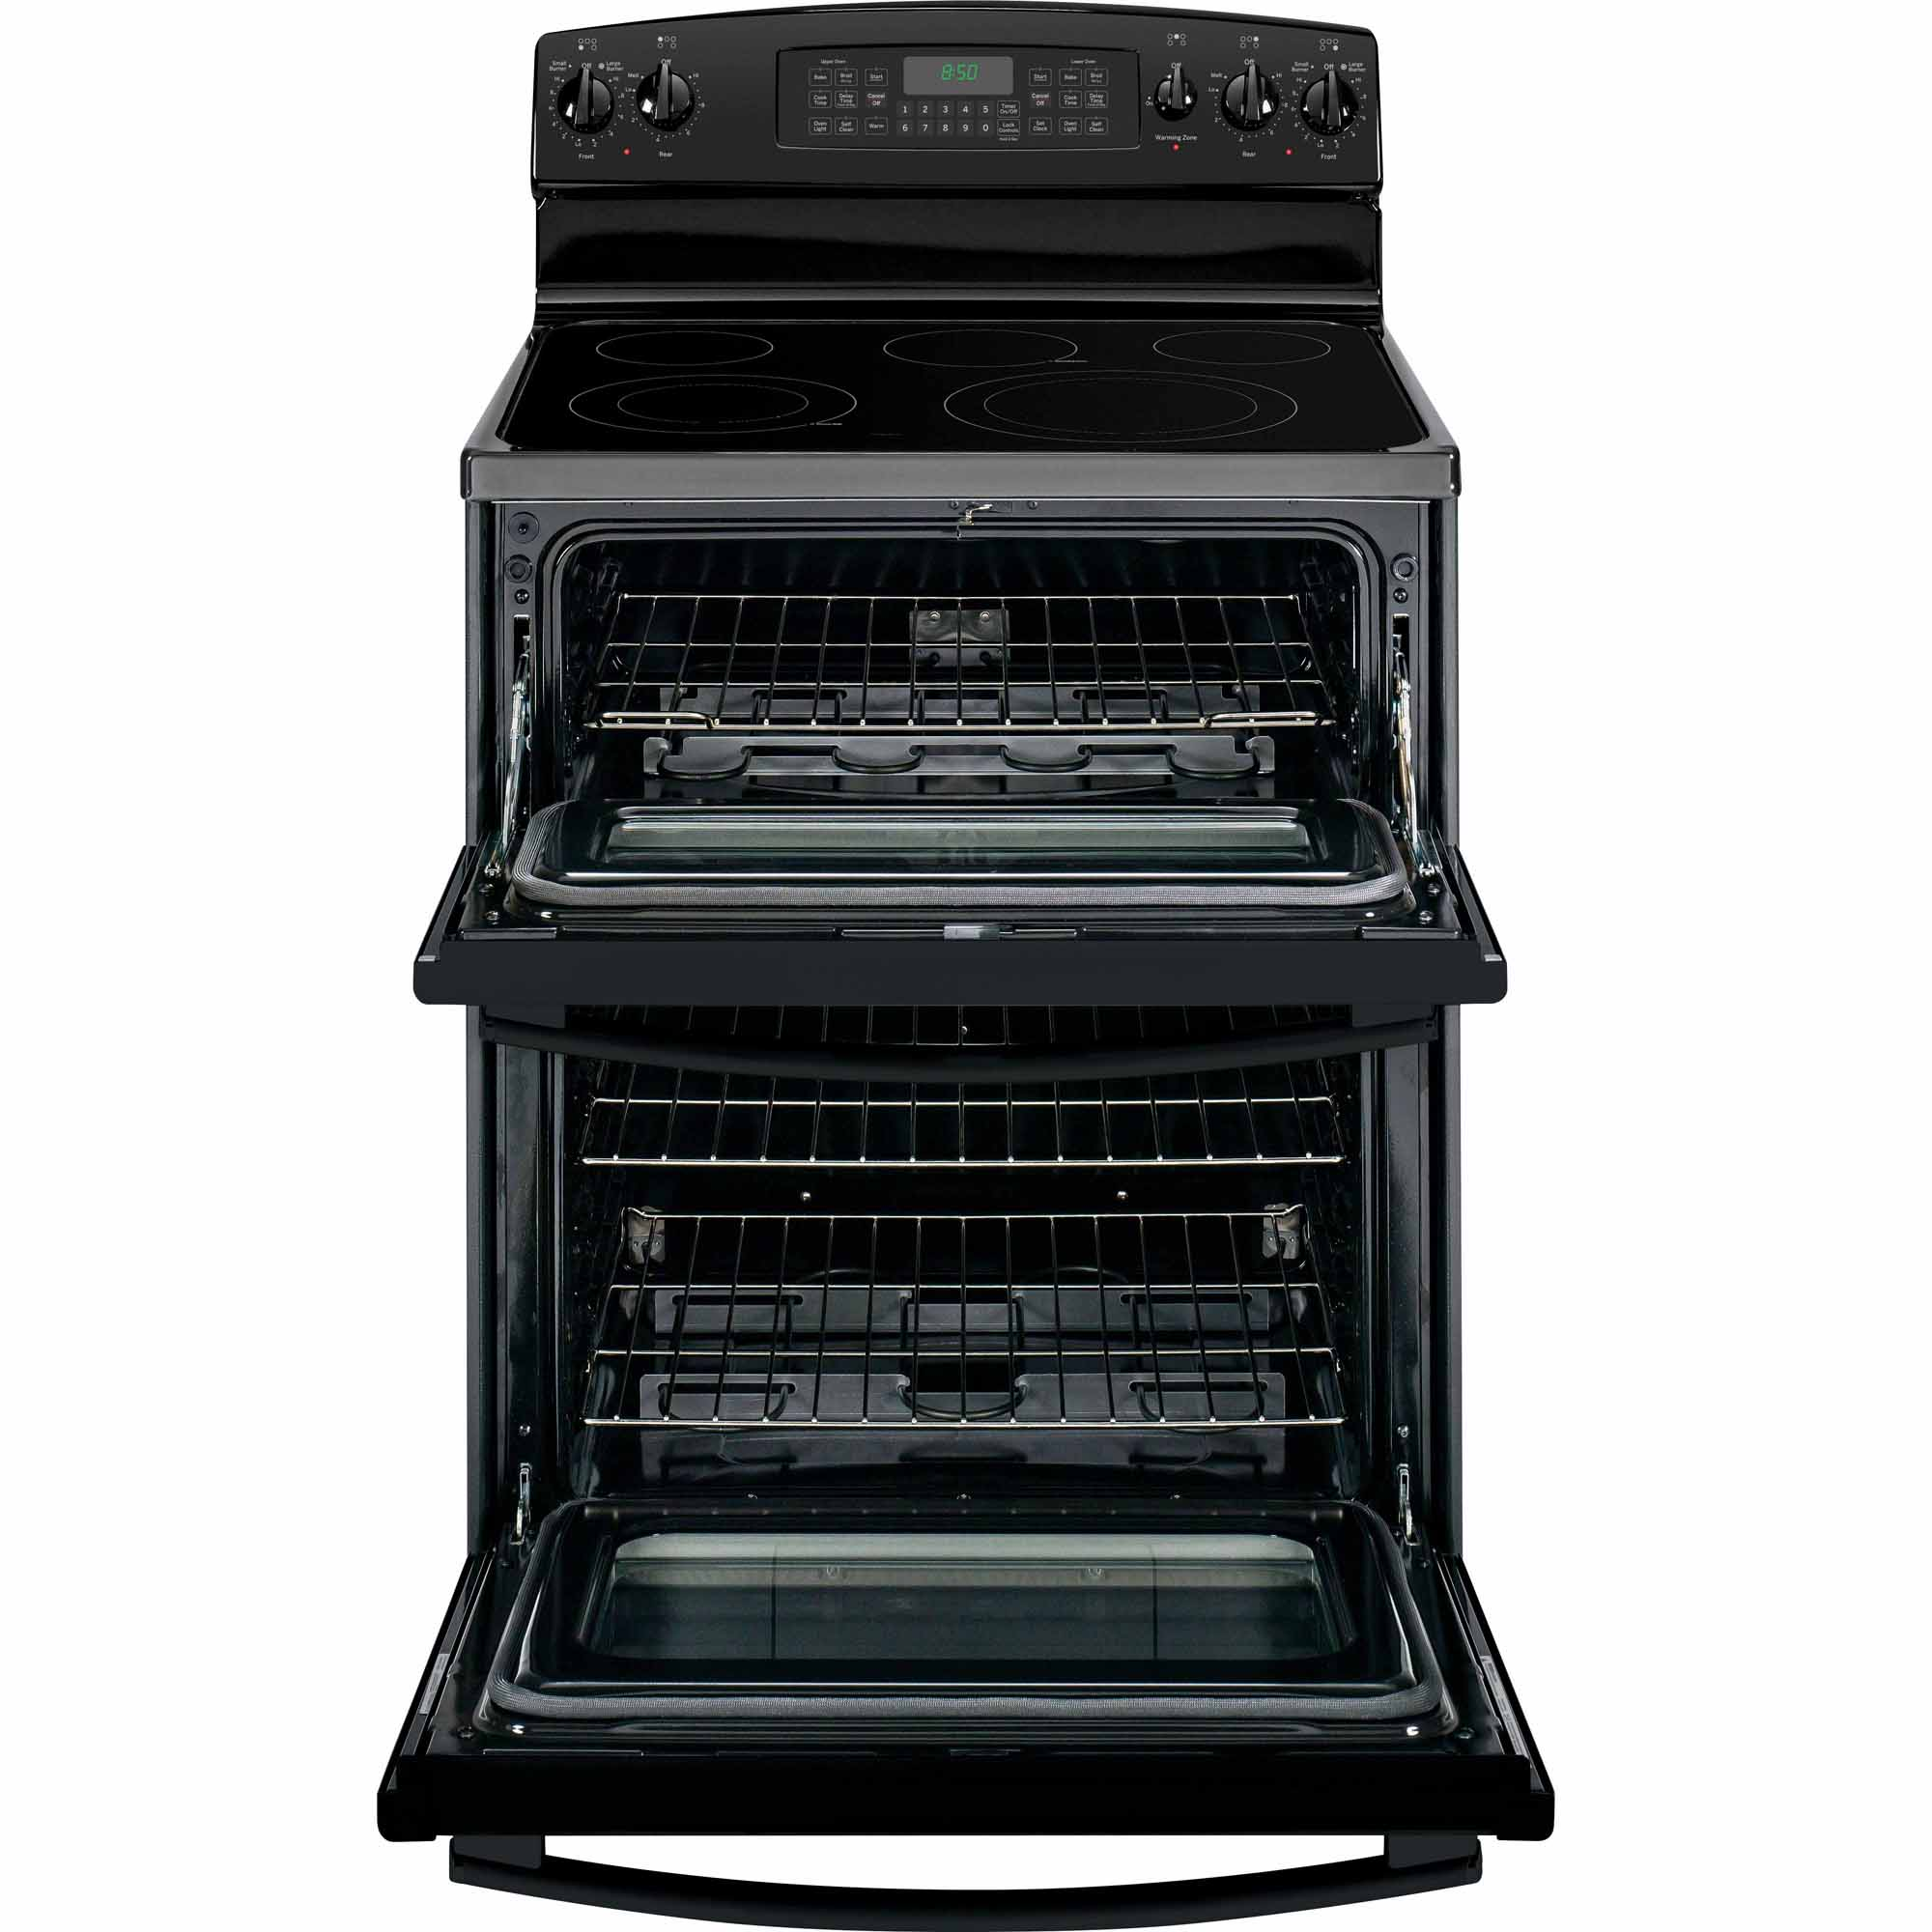 GE 6.6 cu. ft. Electric Range w/ Double Oven - Black